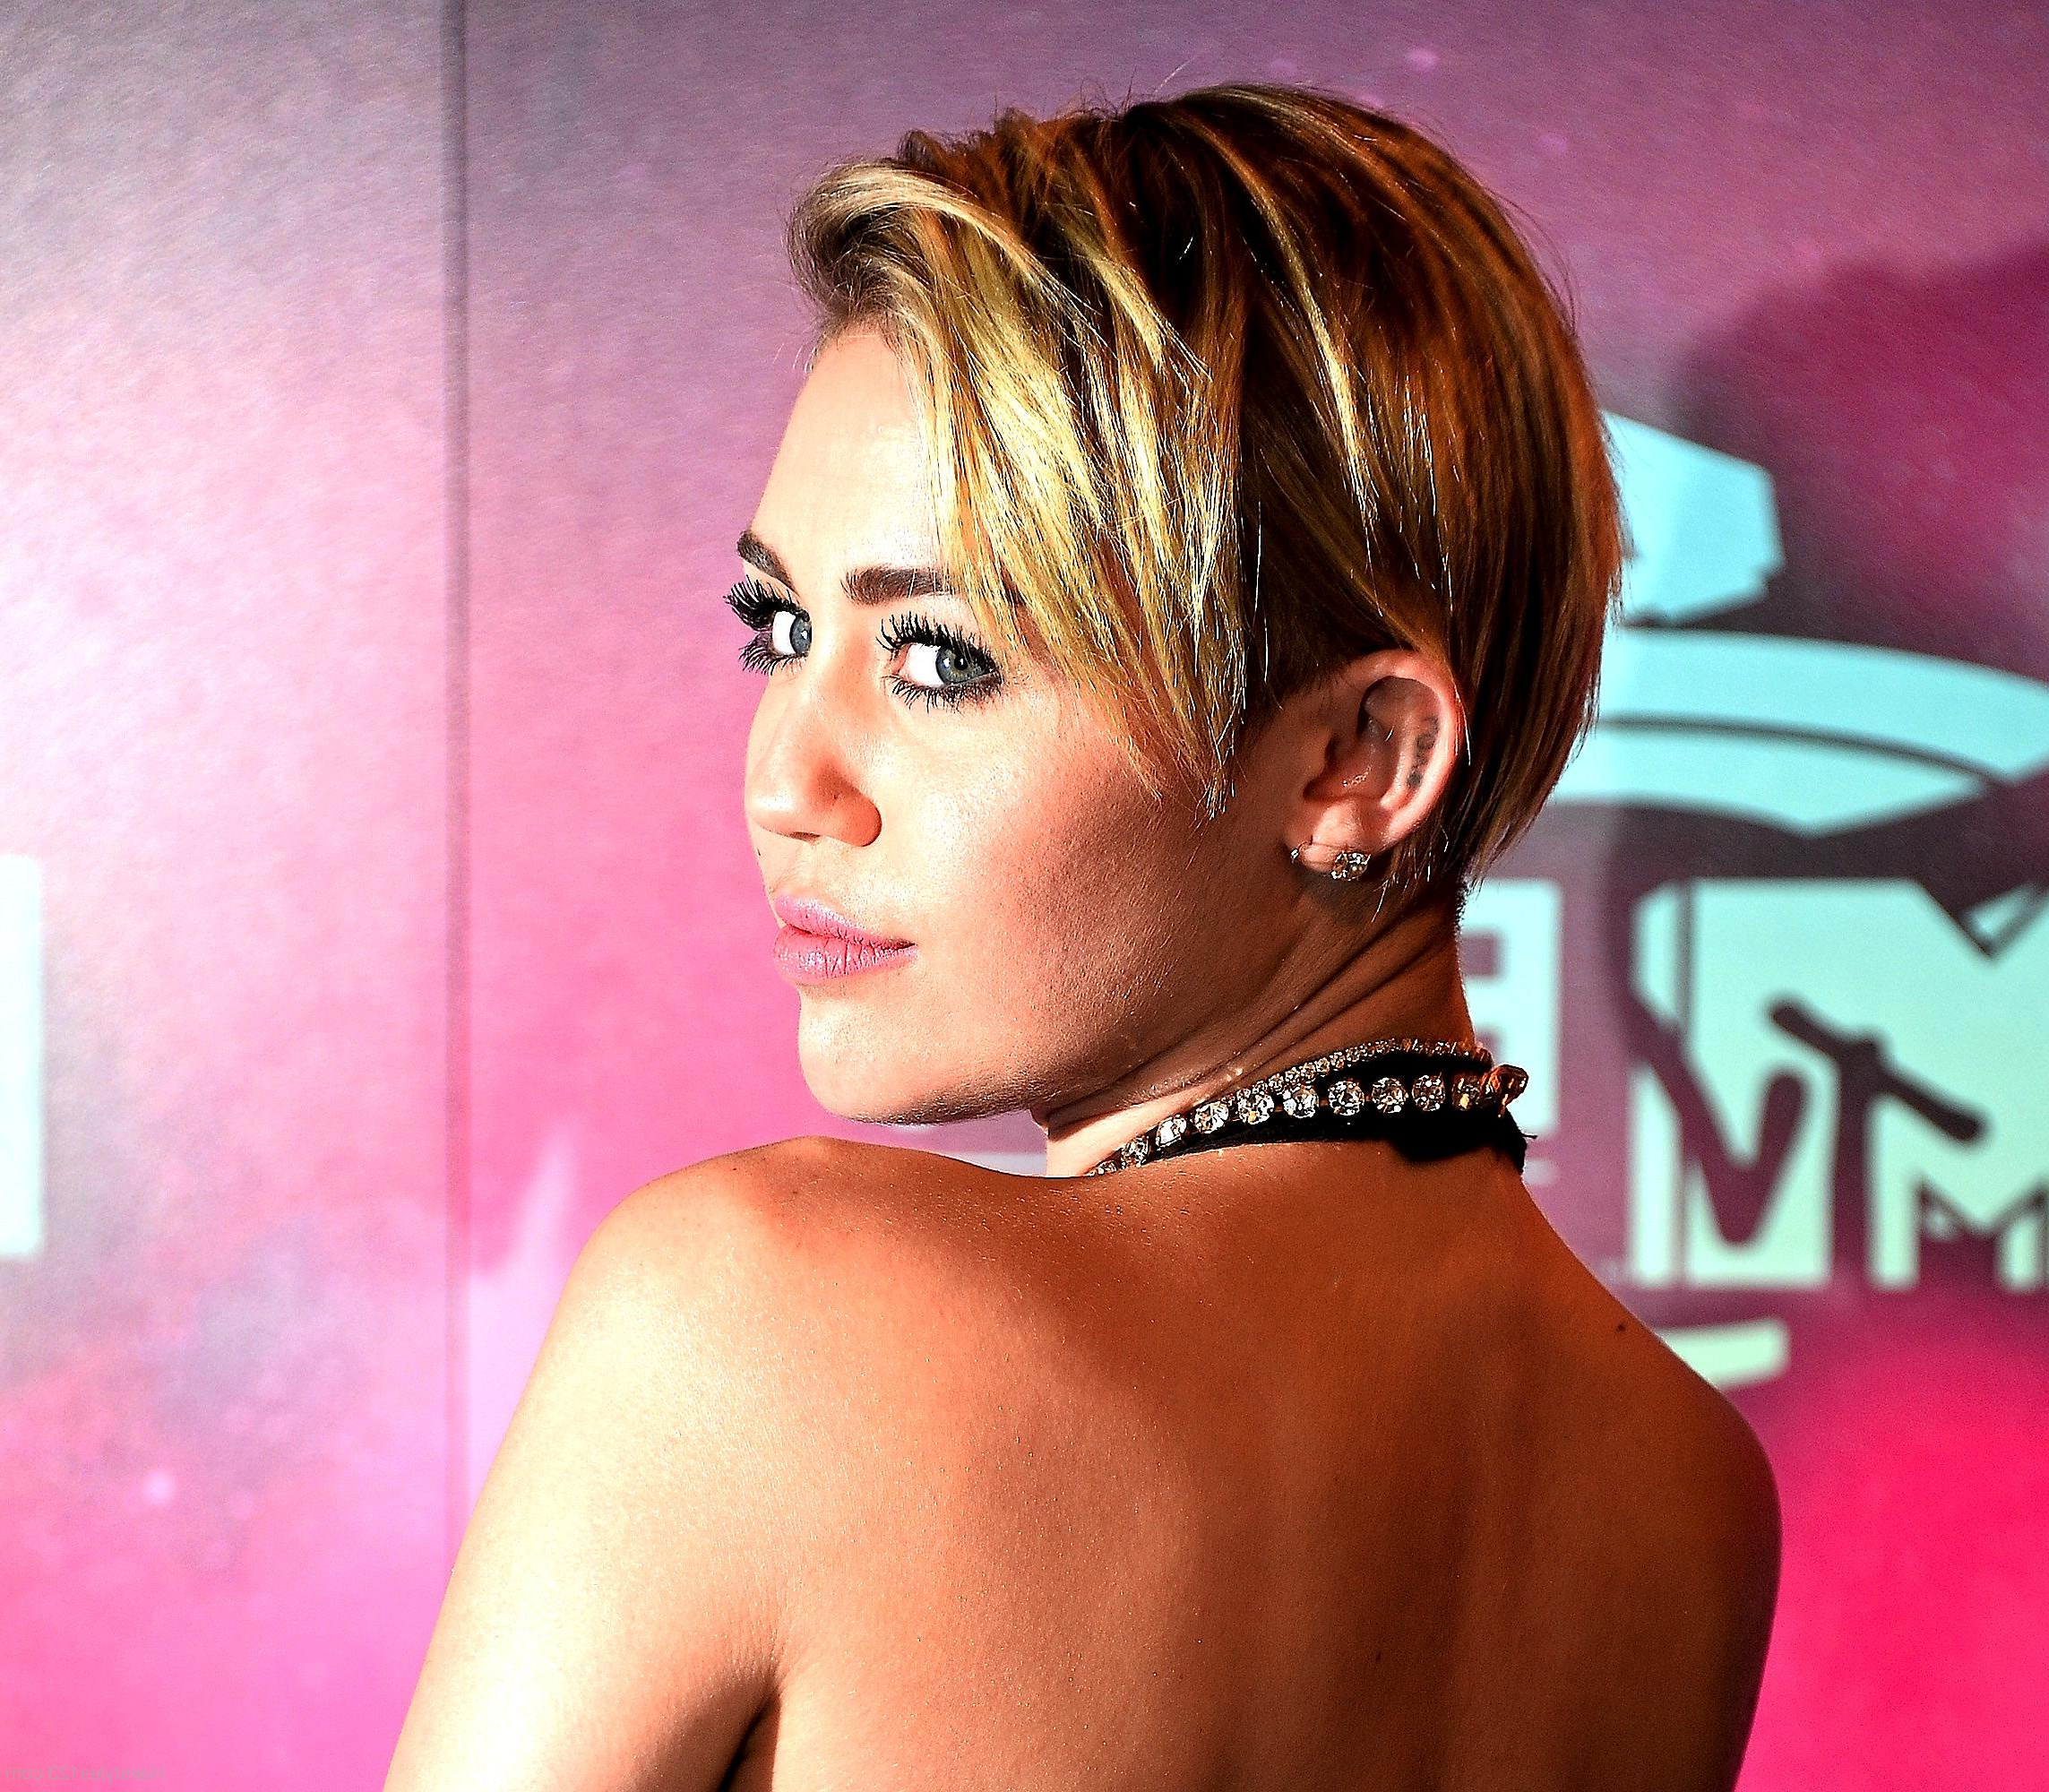 Miley Cyrus Short Hairstyle With Miley Cyrus Short Hairstyles (View 24 of 25)